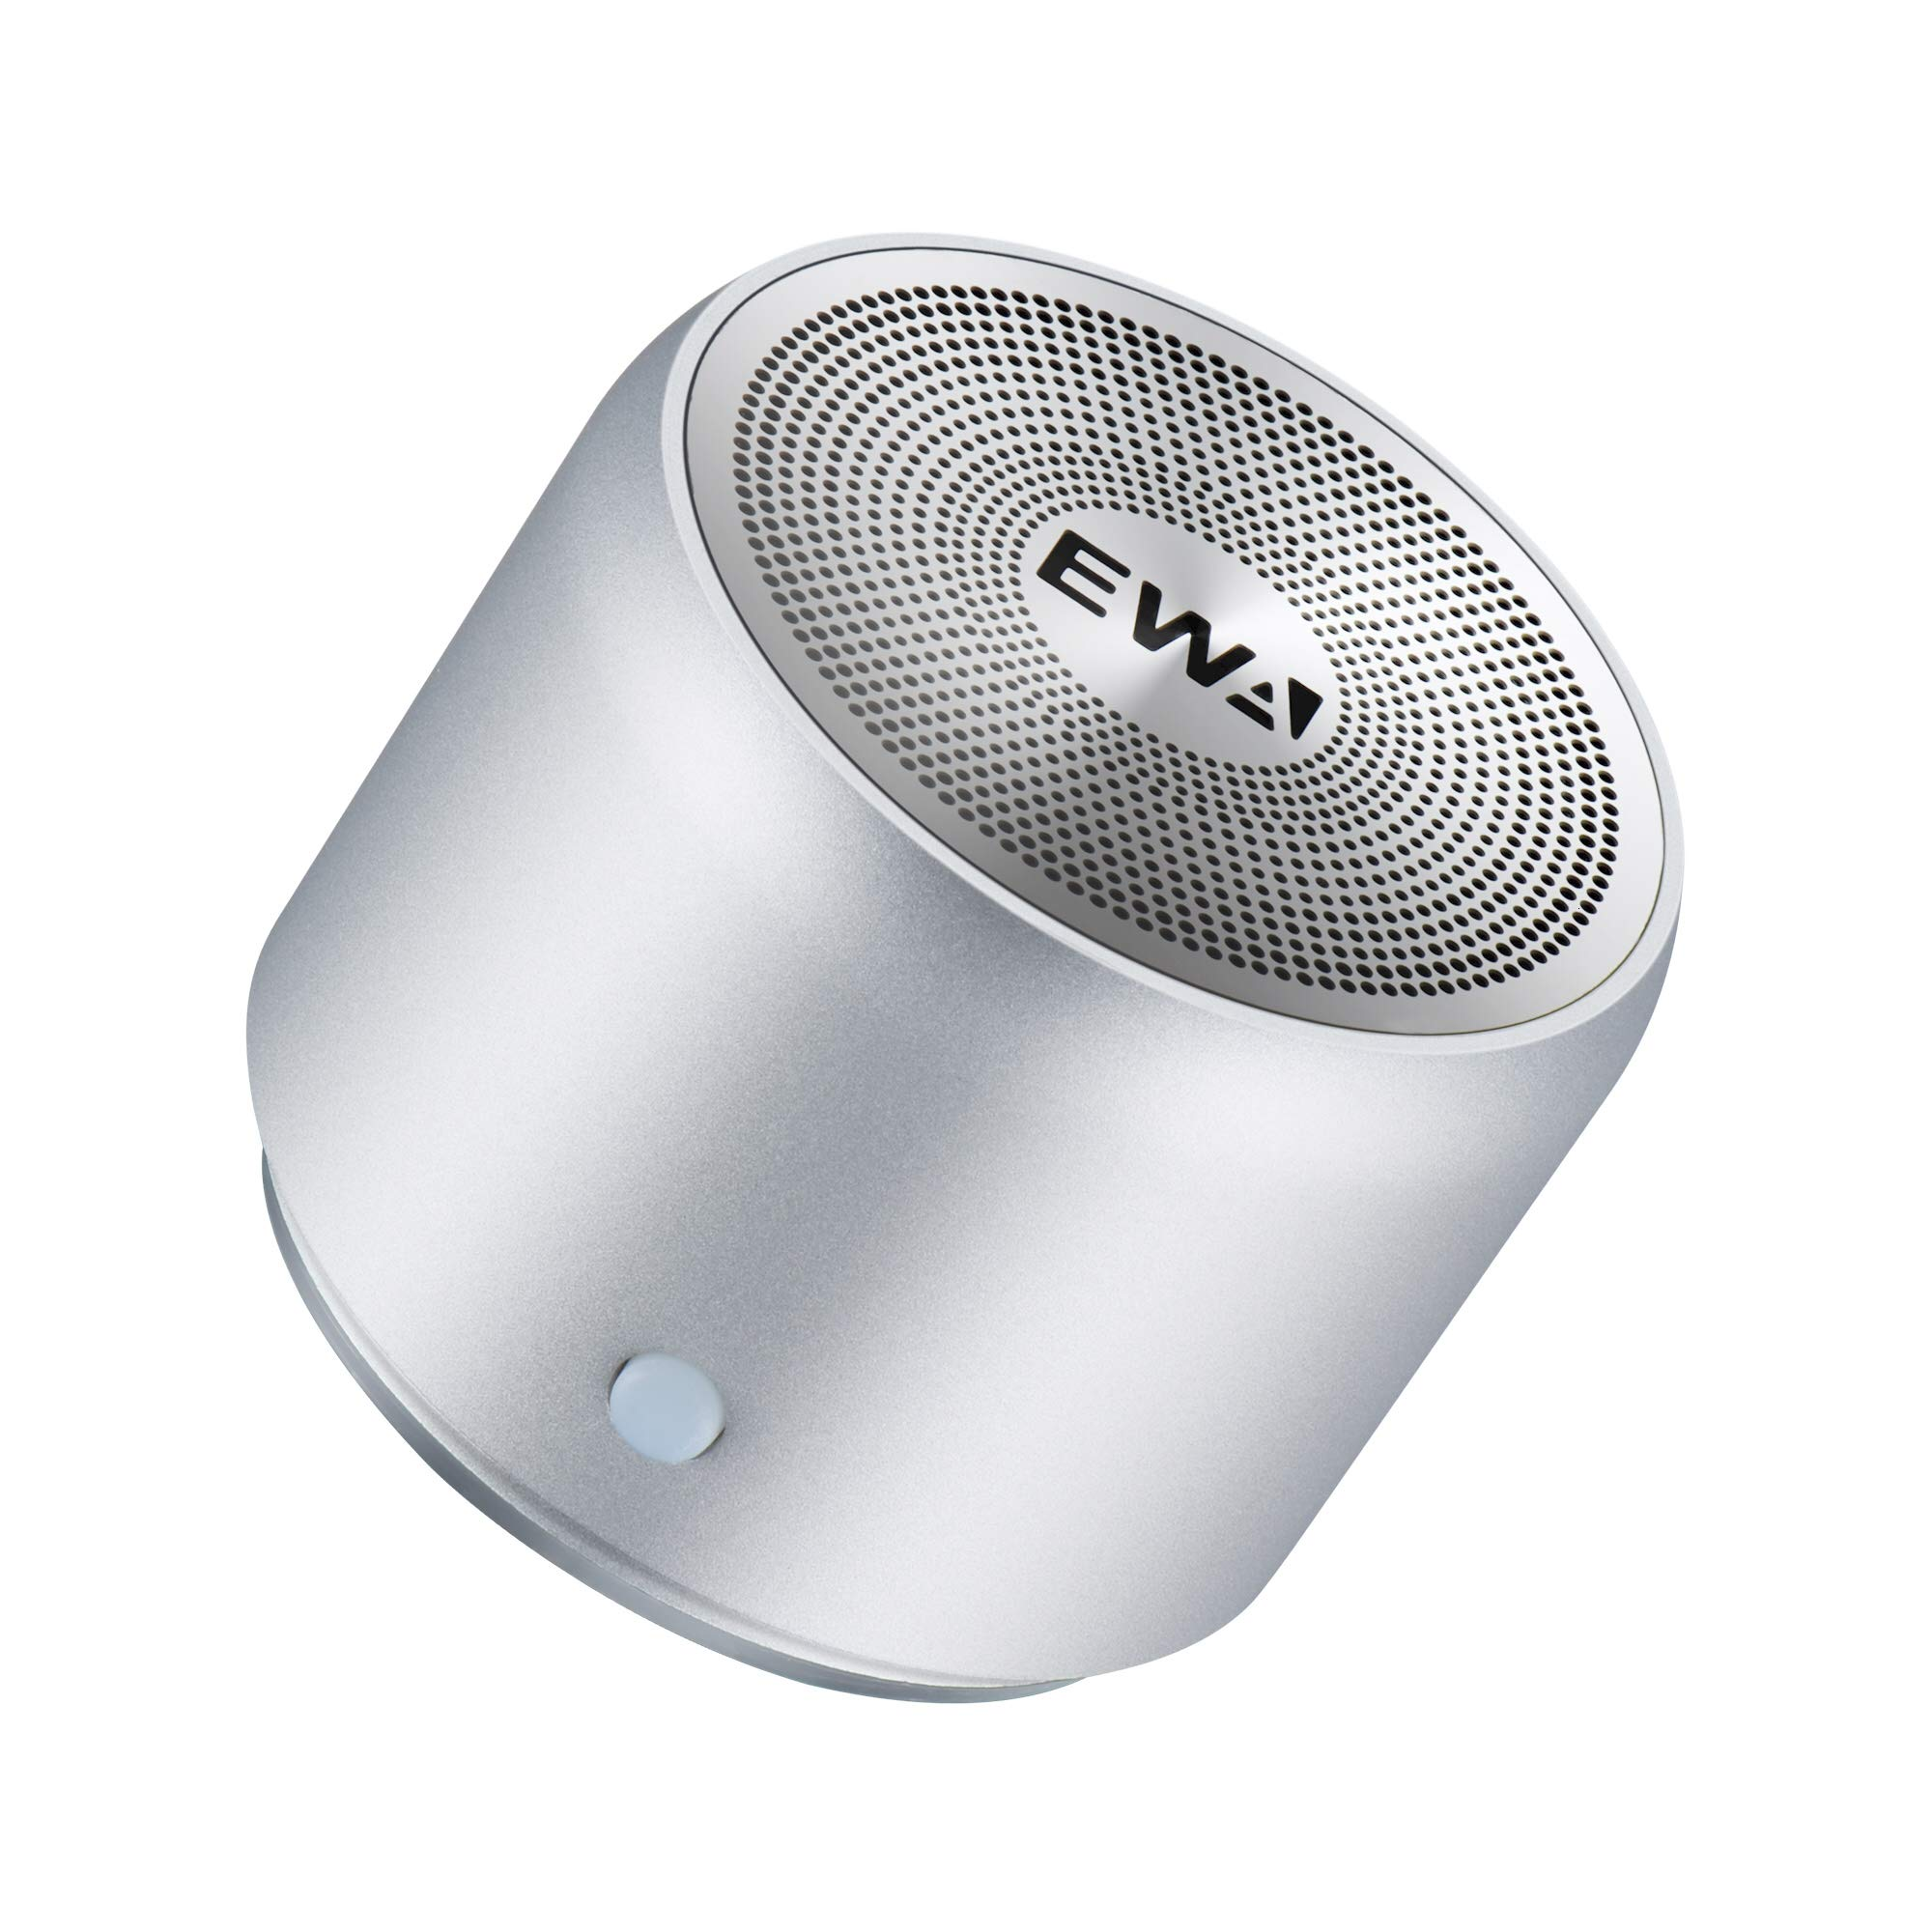 EWA A106 Portable Mini Bluetooth Speaker, Enhanced Bass and High Definition Sound, Portable Design, for iPhone, iPad,Nexus,Laptops and More (Silver)